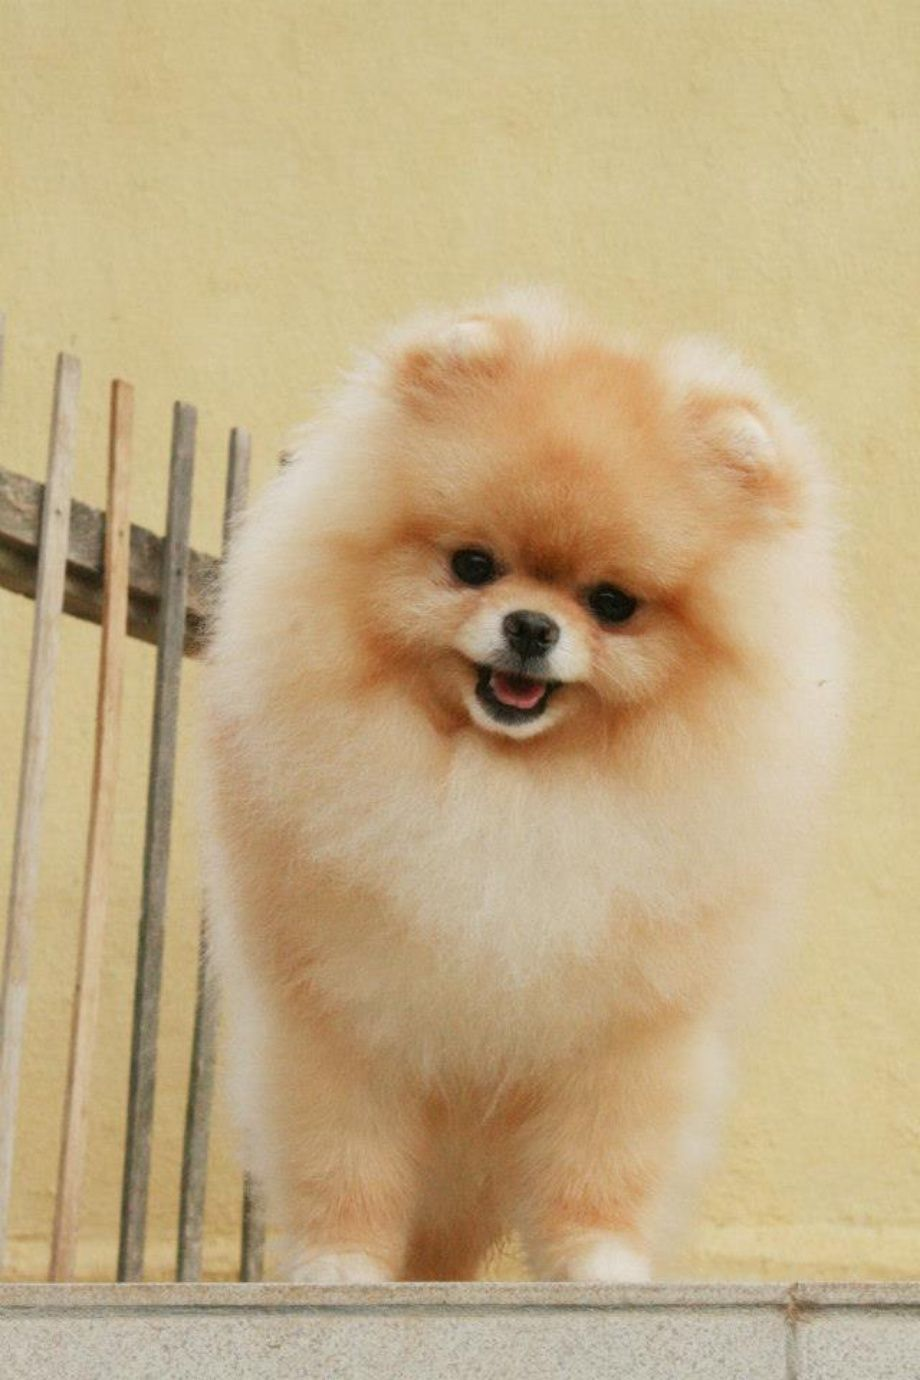 Pomeranian Dog Breed Information Dog Animal And Pomeranians - Someone should have told this dog owner that pomeranians melt in water